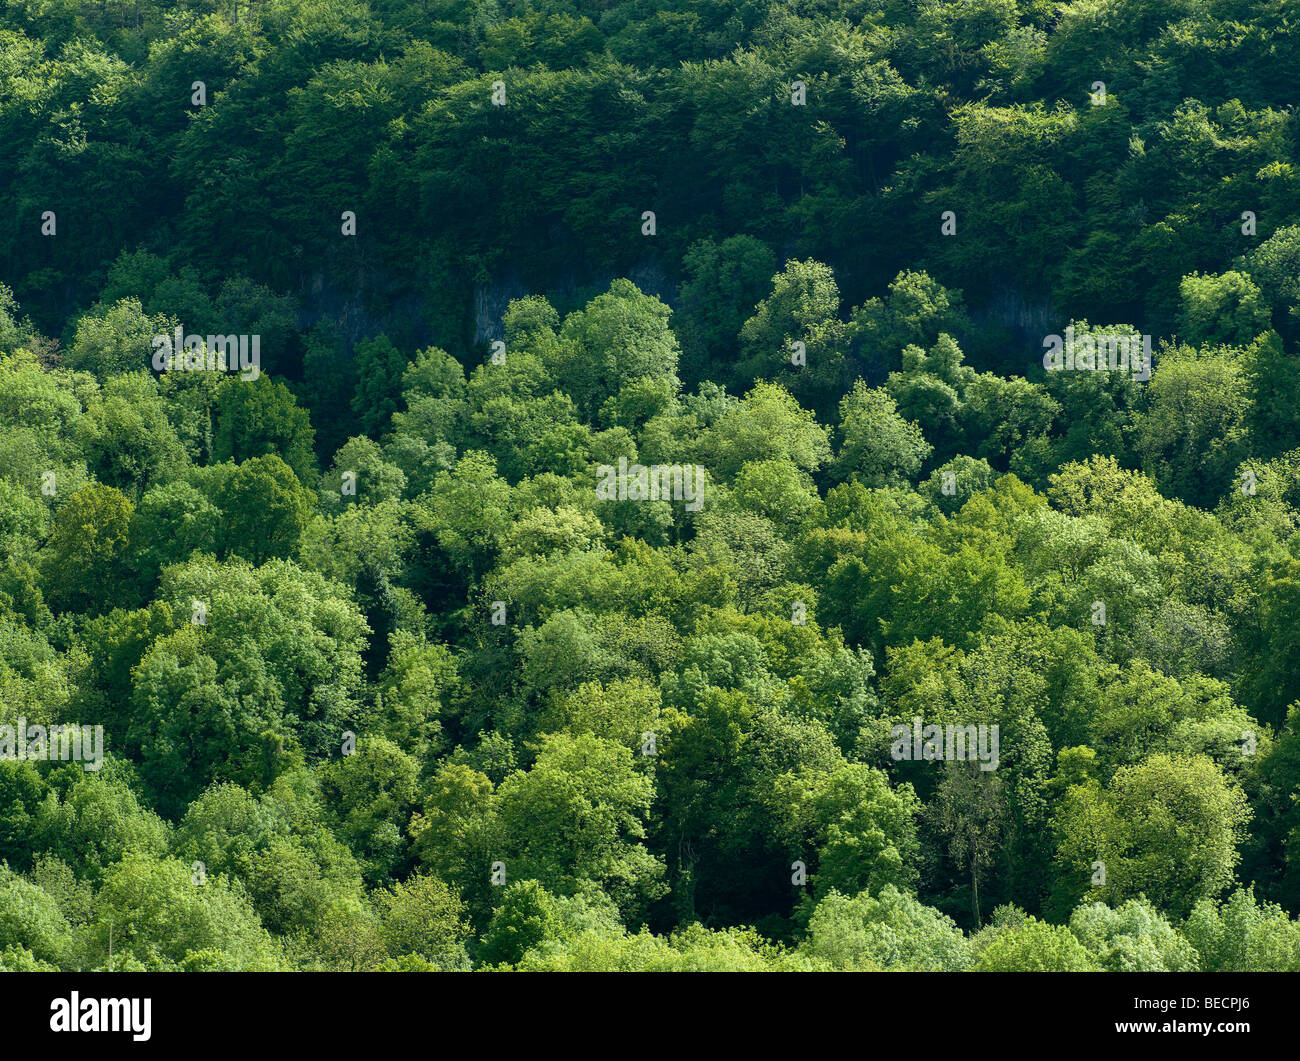 Bäume am Ufer des Flusses Wye Wye Valley, Gloucestershire Englans. Stockbild